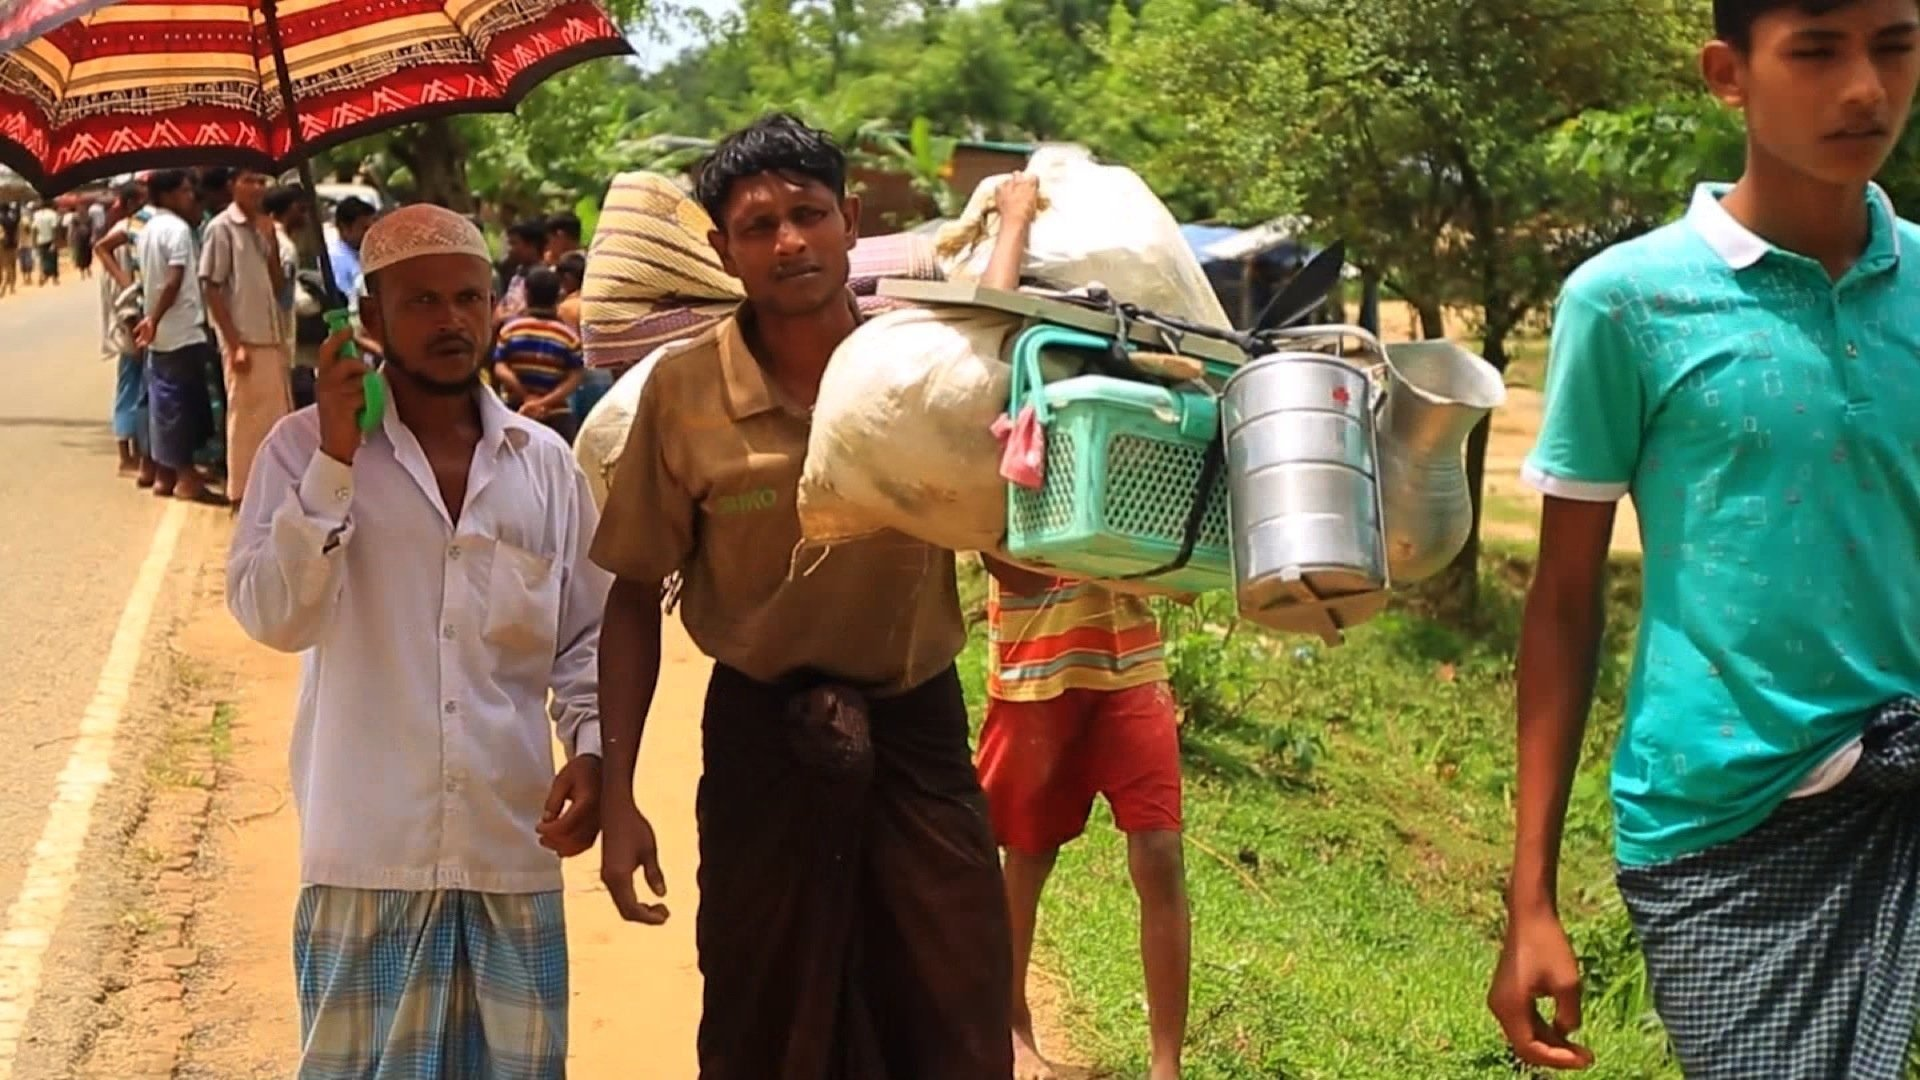 Tens of thousands of refugees are trapped on the border into Bangladesh without basic food and medicine amid operations by the Myanmar military, which have already killed hundreds.